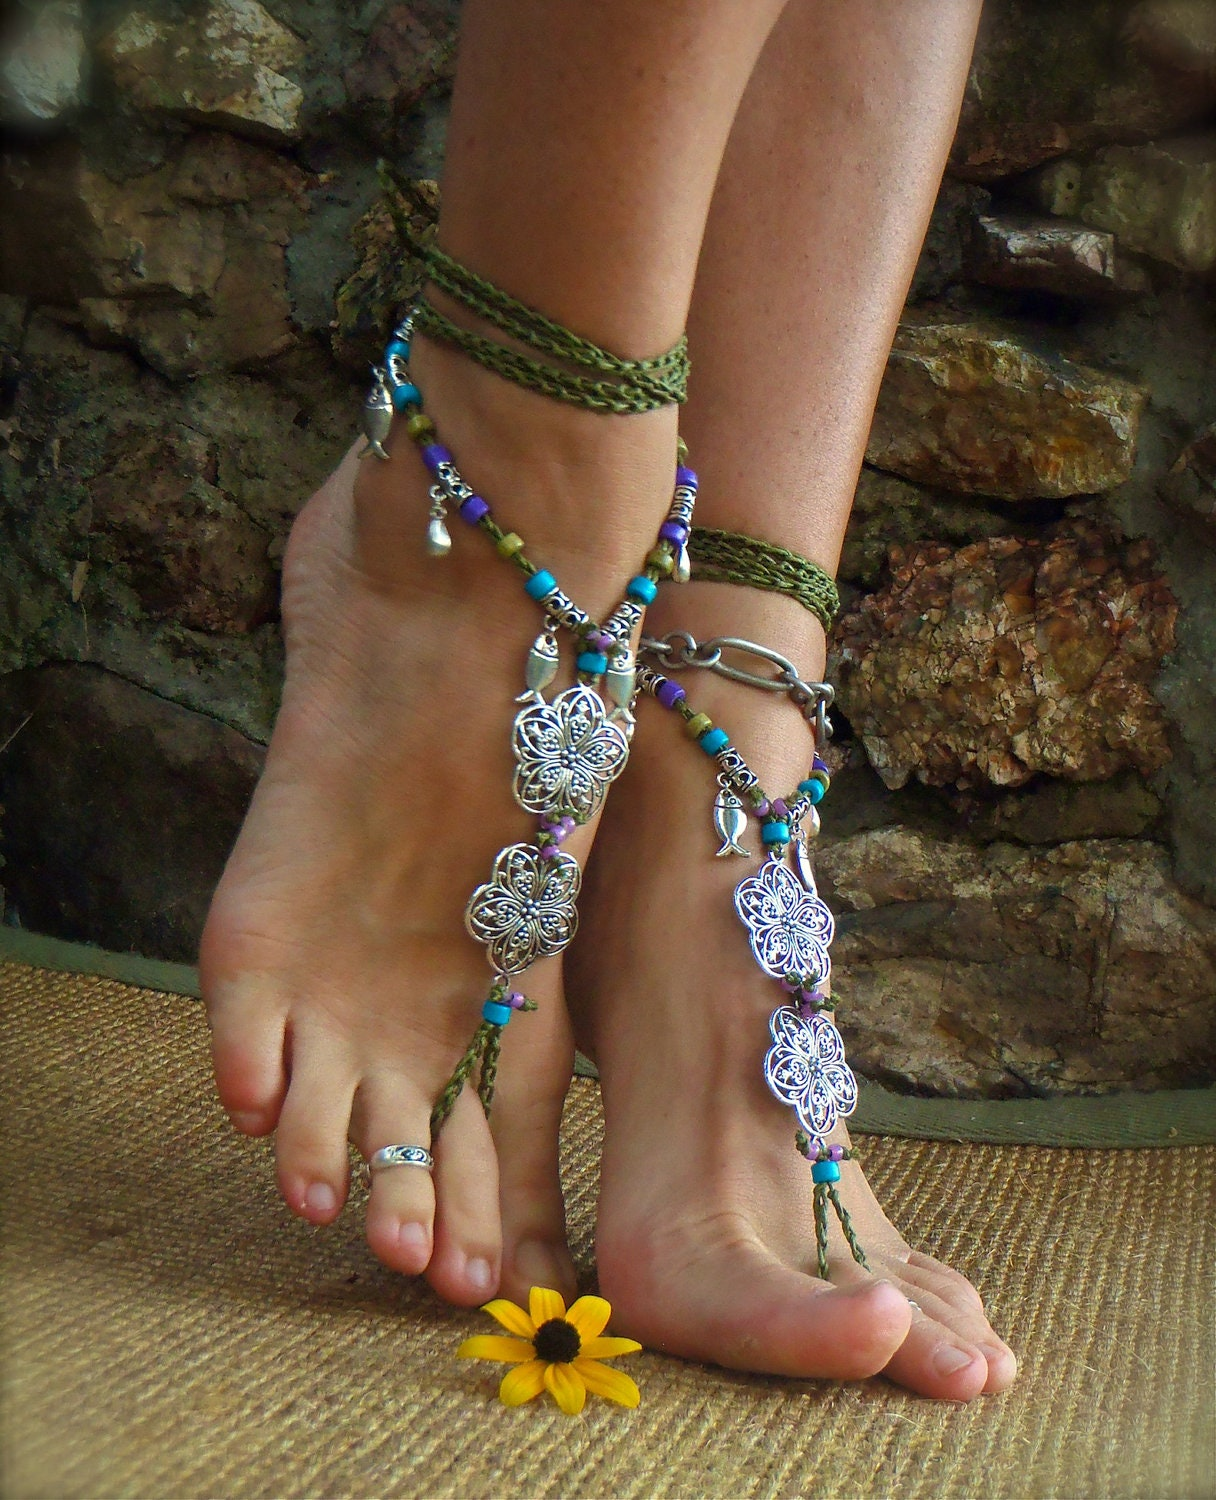 Gaia Barefoot Sandals Army Green Anklets Gypsy Sandals Sole